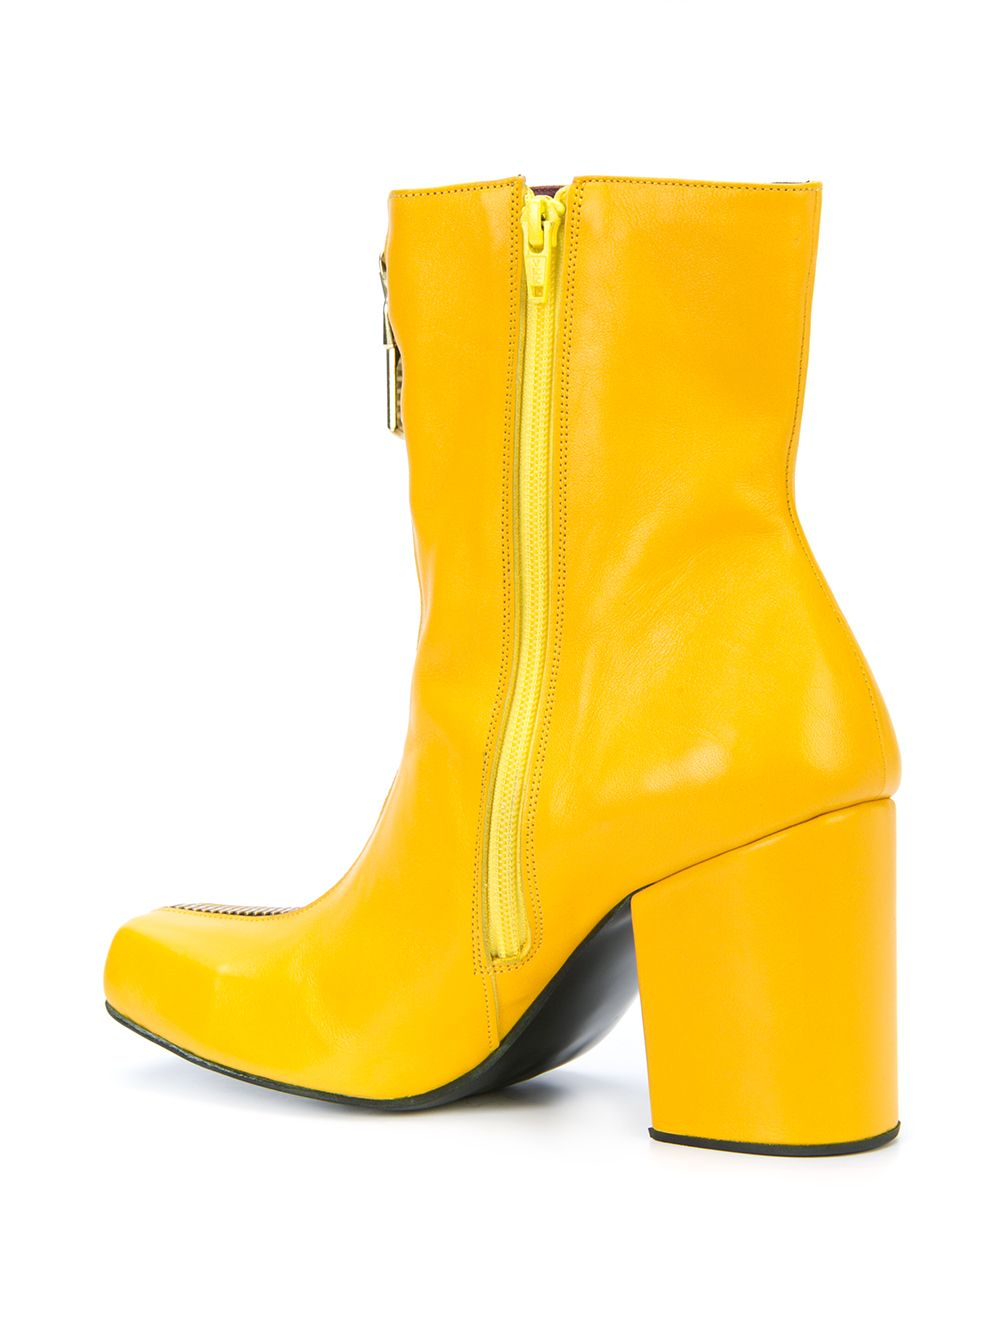 Charles Jeffrey Loverboy x Roker Atelier Yellow Zipped Jasc Boots - 3